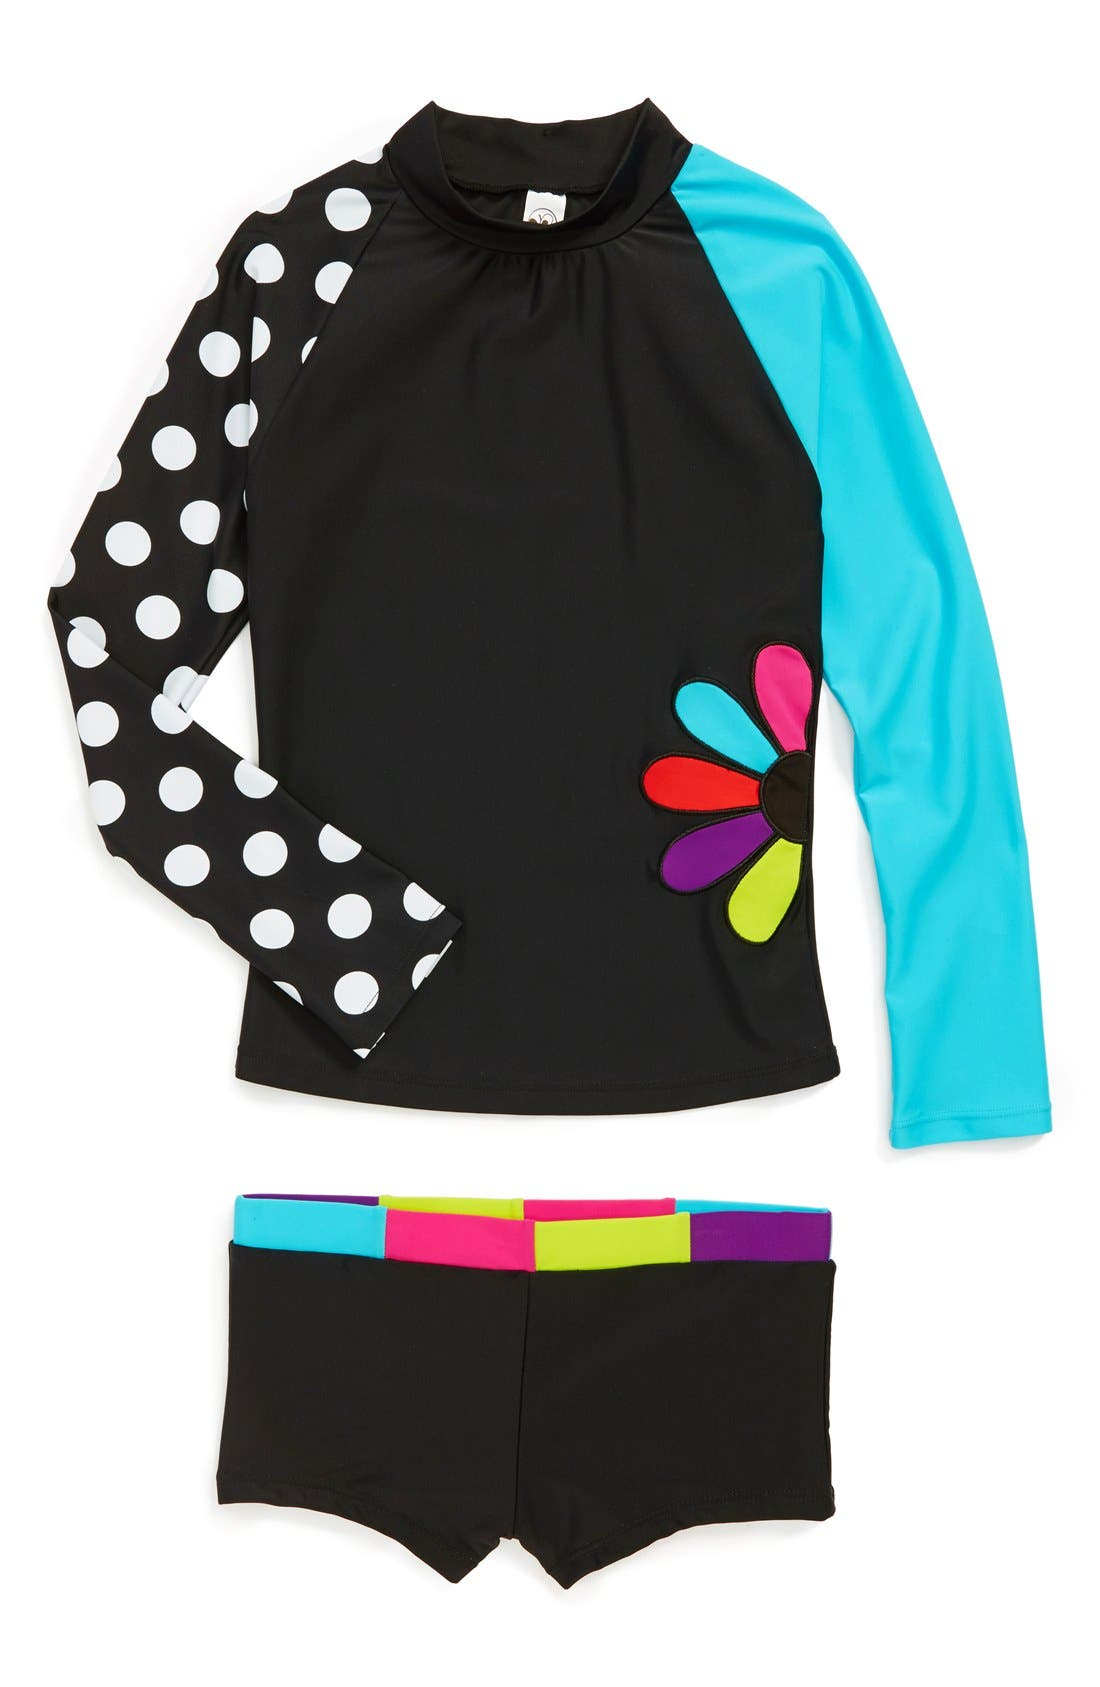 Main Image - Limeapple Two-Piece Rashguard Swimsuit (Little Girls & Big Girls)